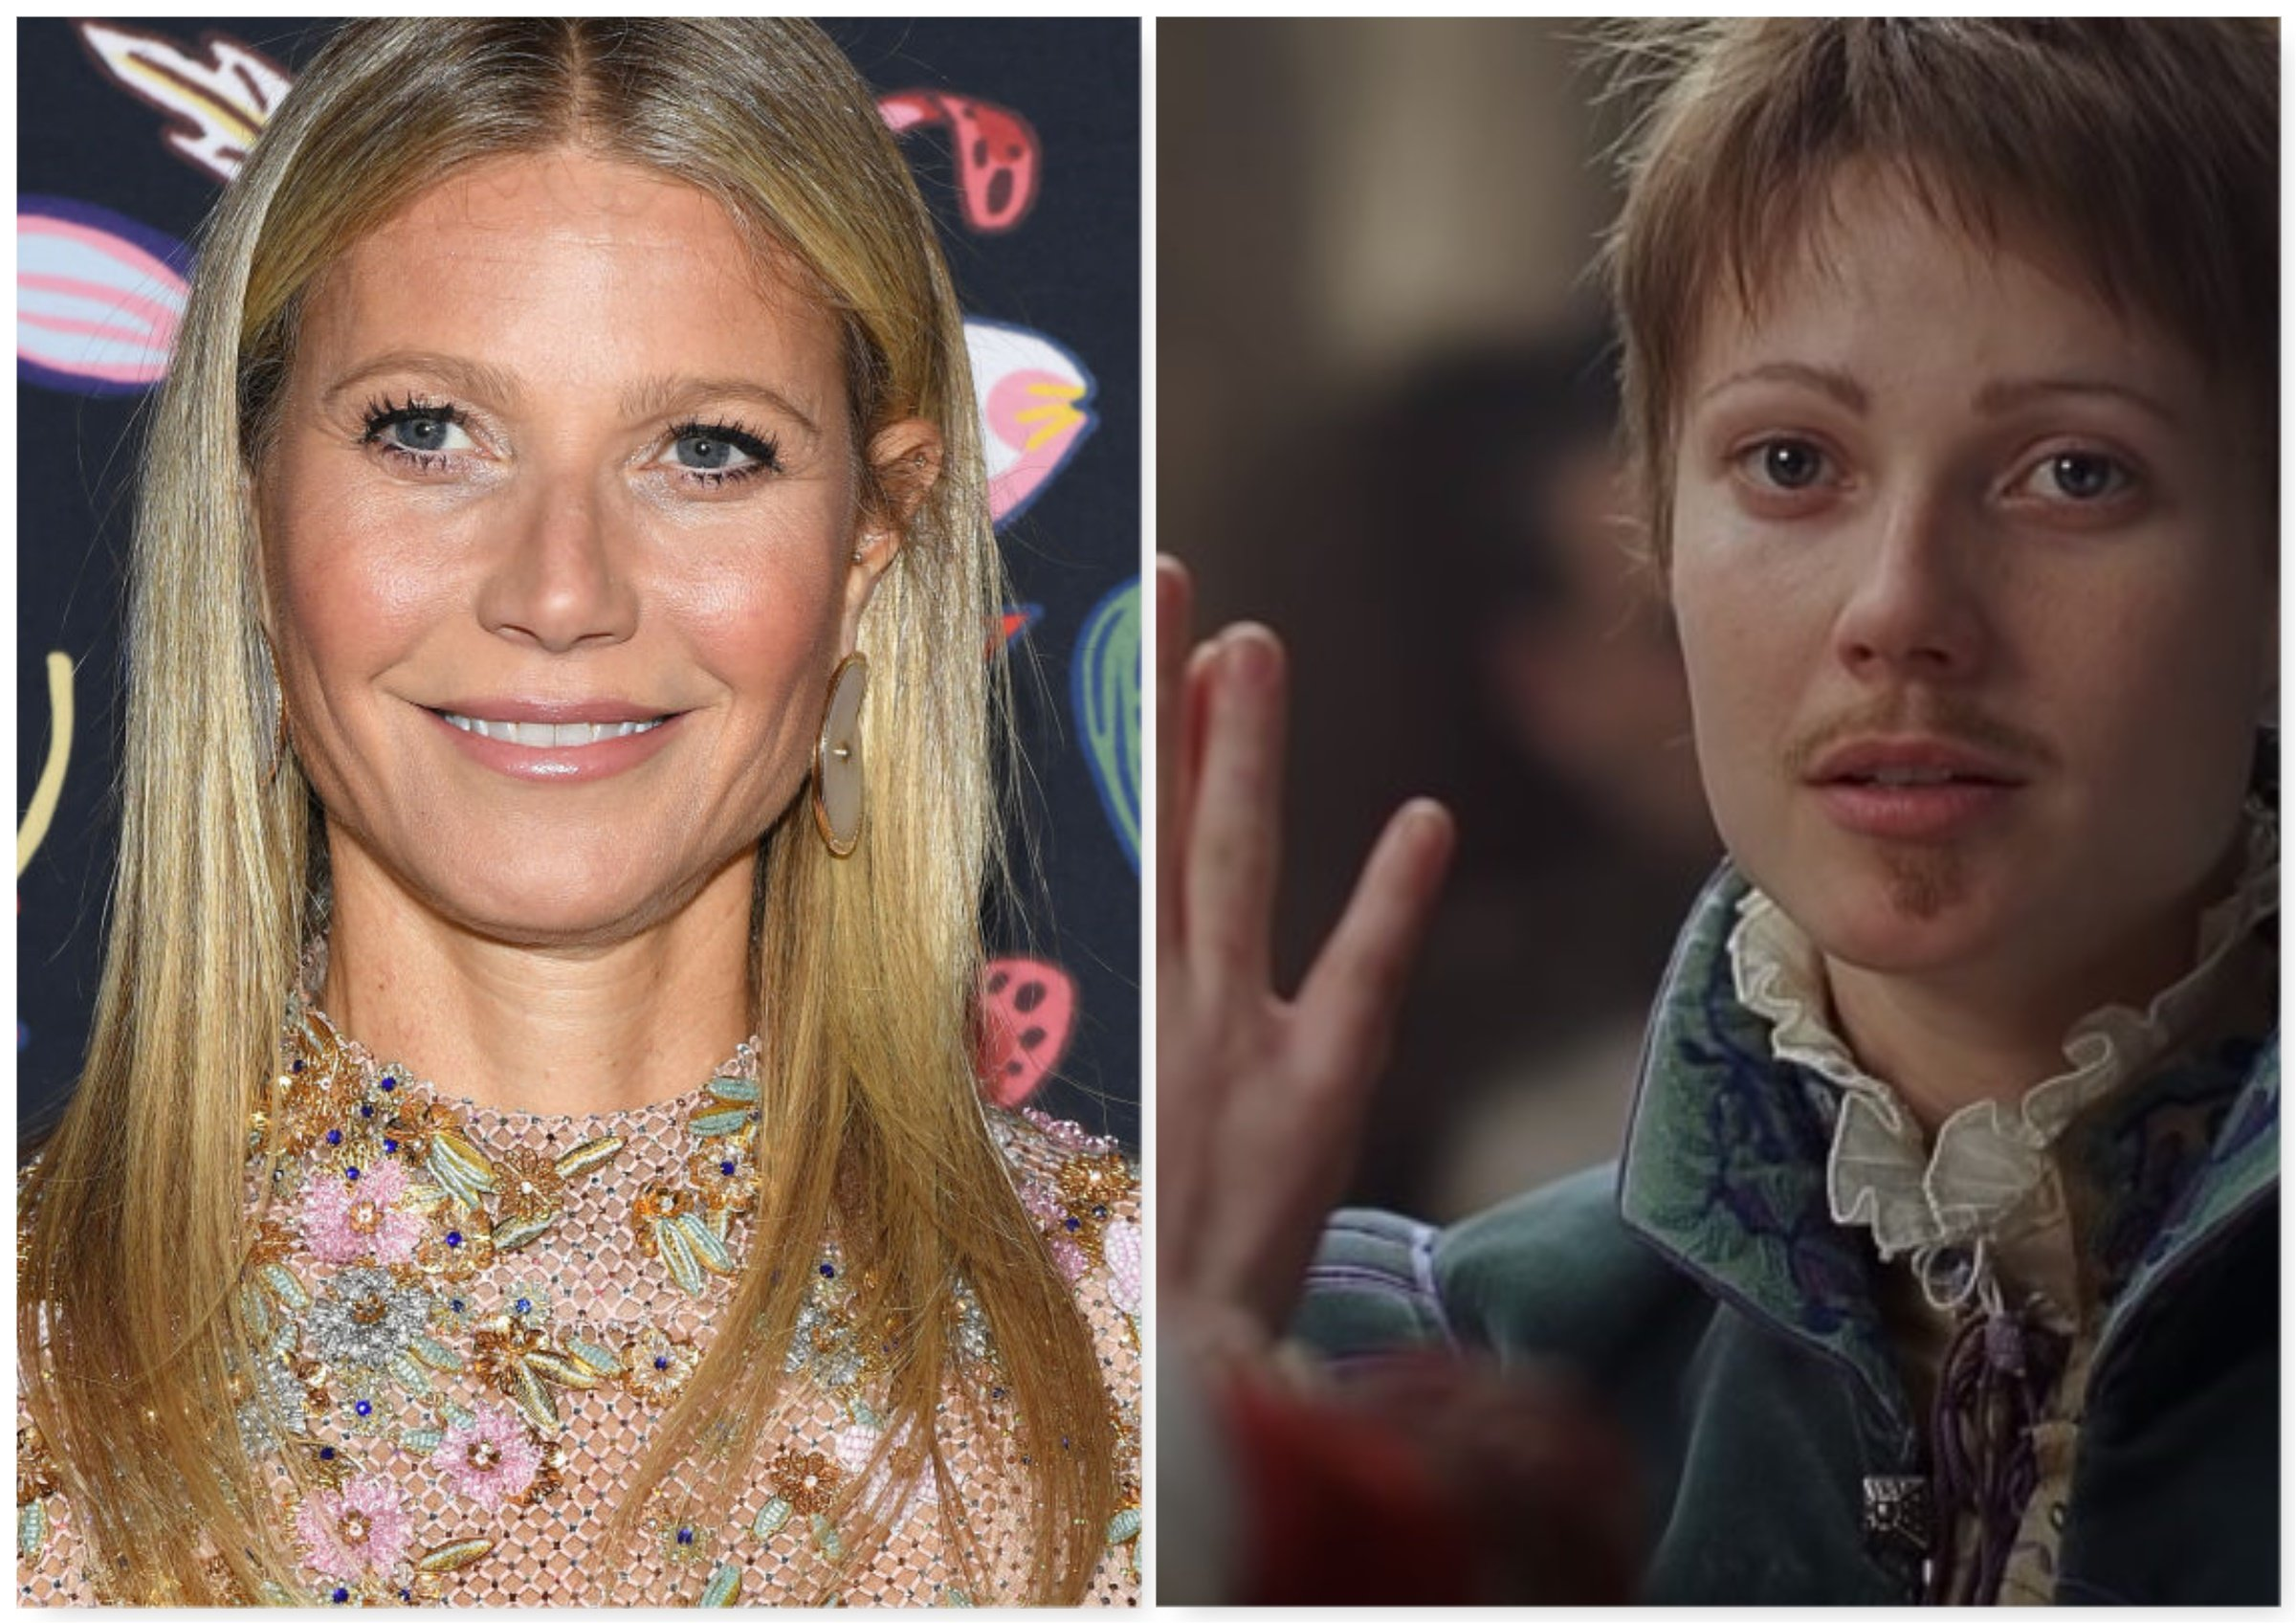 Image Credits: Getty Images/Pascal Le Segretain - YouTube/Miramax - Miramax/Shakespeare in Love